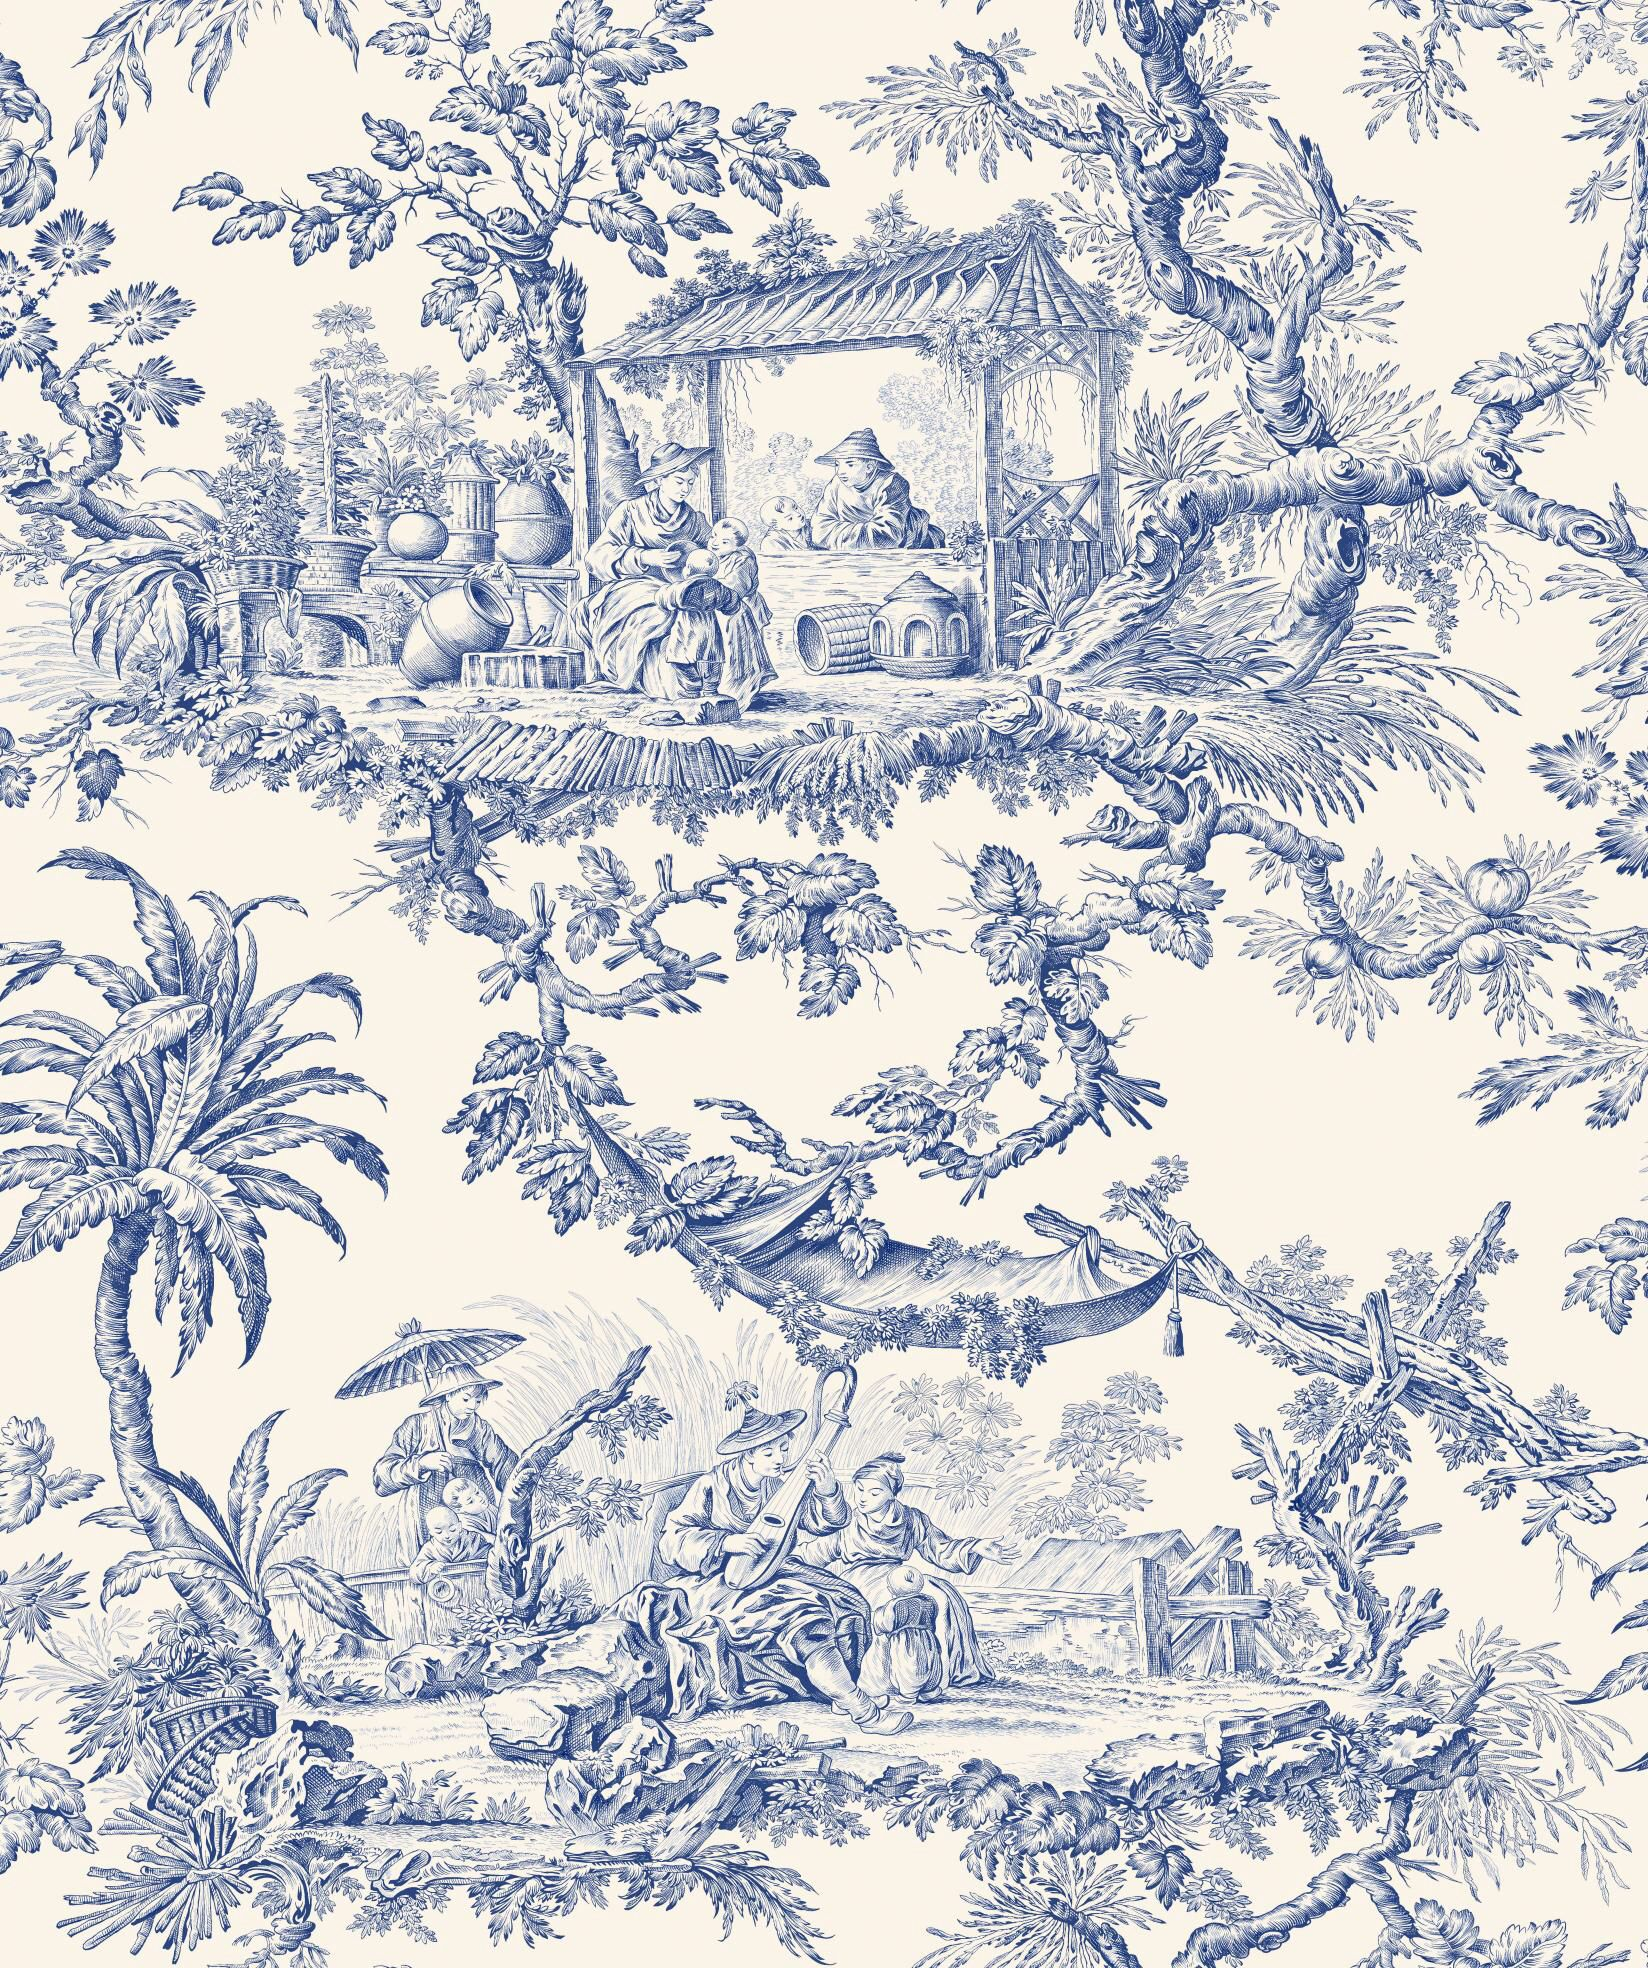 Toile De Jouy Beautiful Print Could Be Printed And Put